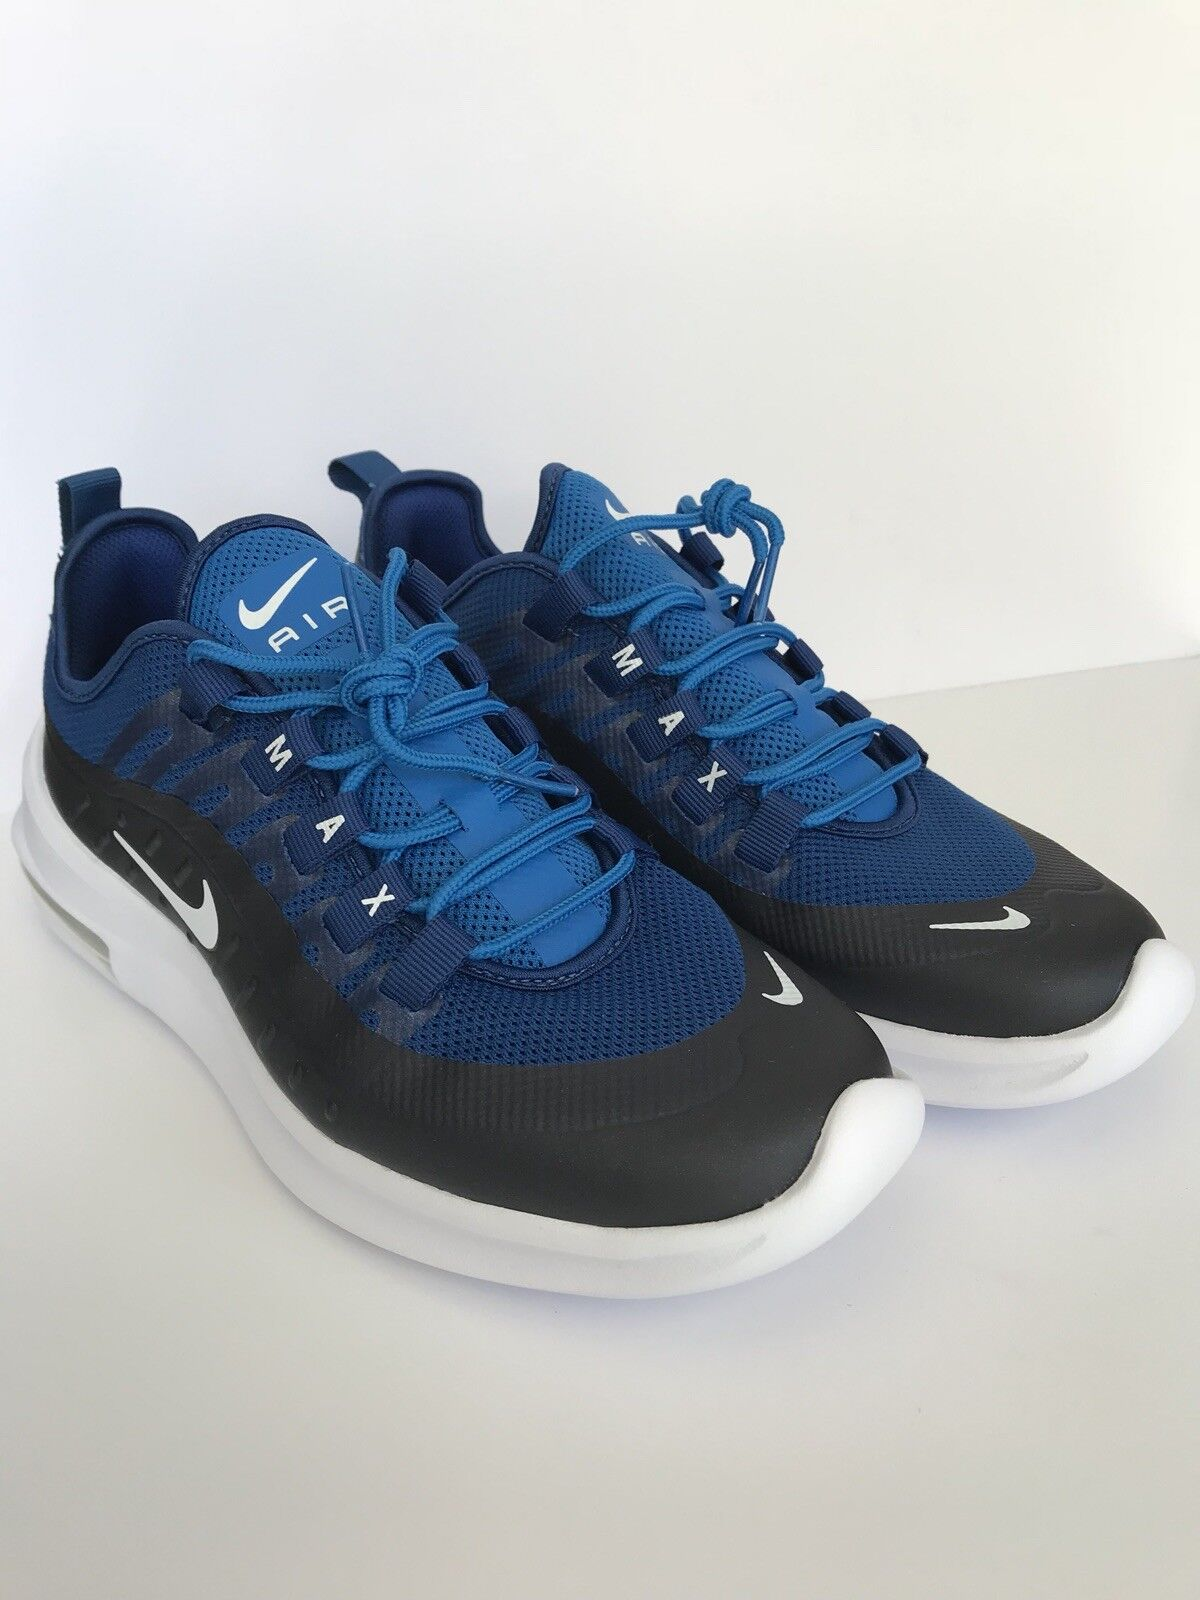 Nike Air Max Axis Mens AA2146-400 Gym bluee Nebula Mesh Running shoes Size 7